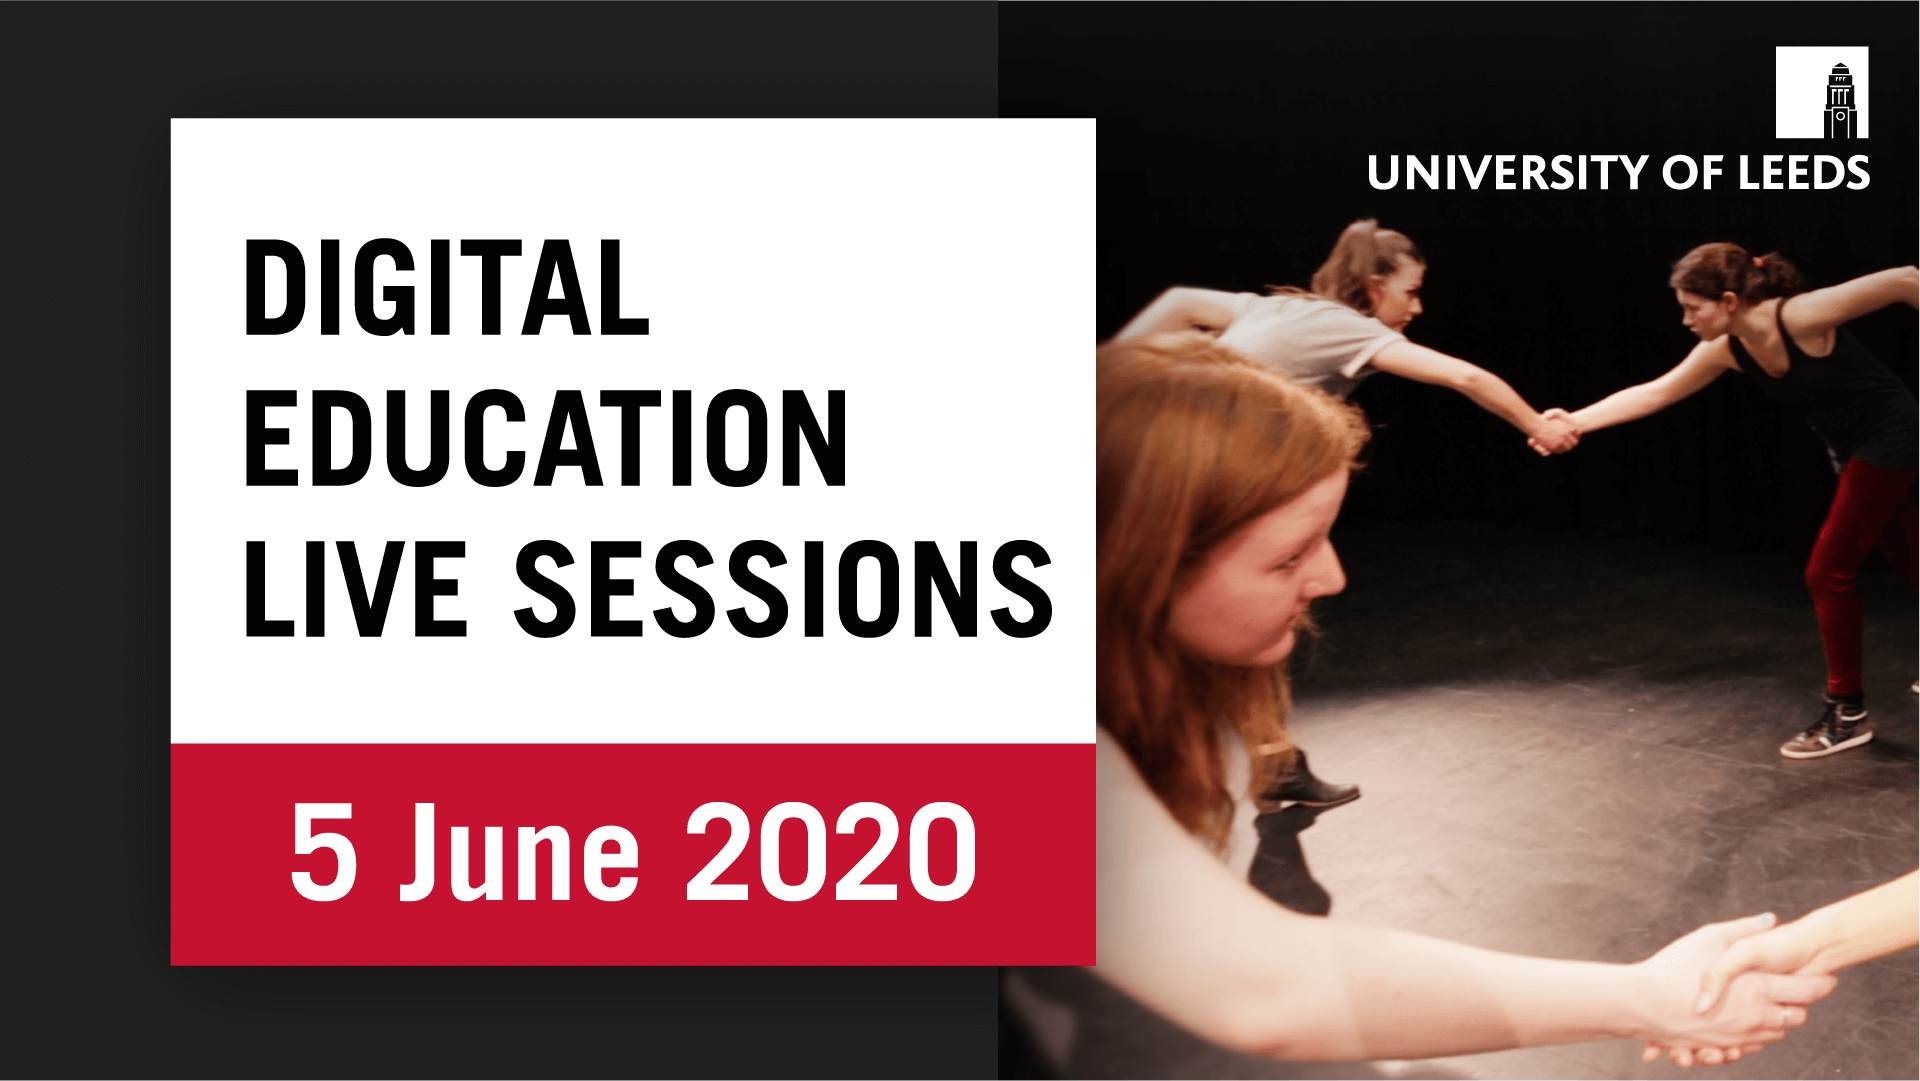 Digital Education Live Sessions: Teaching Theatre Skills Online